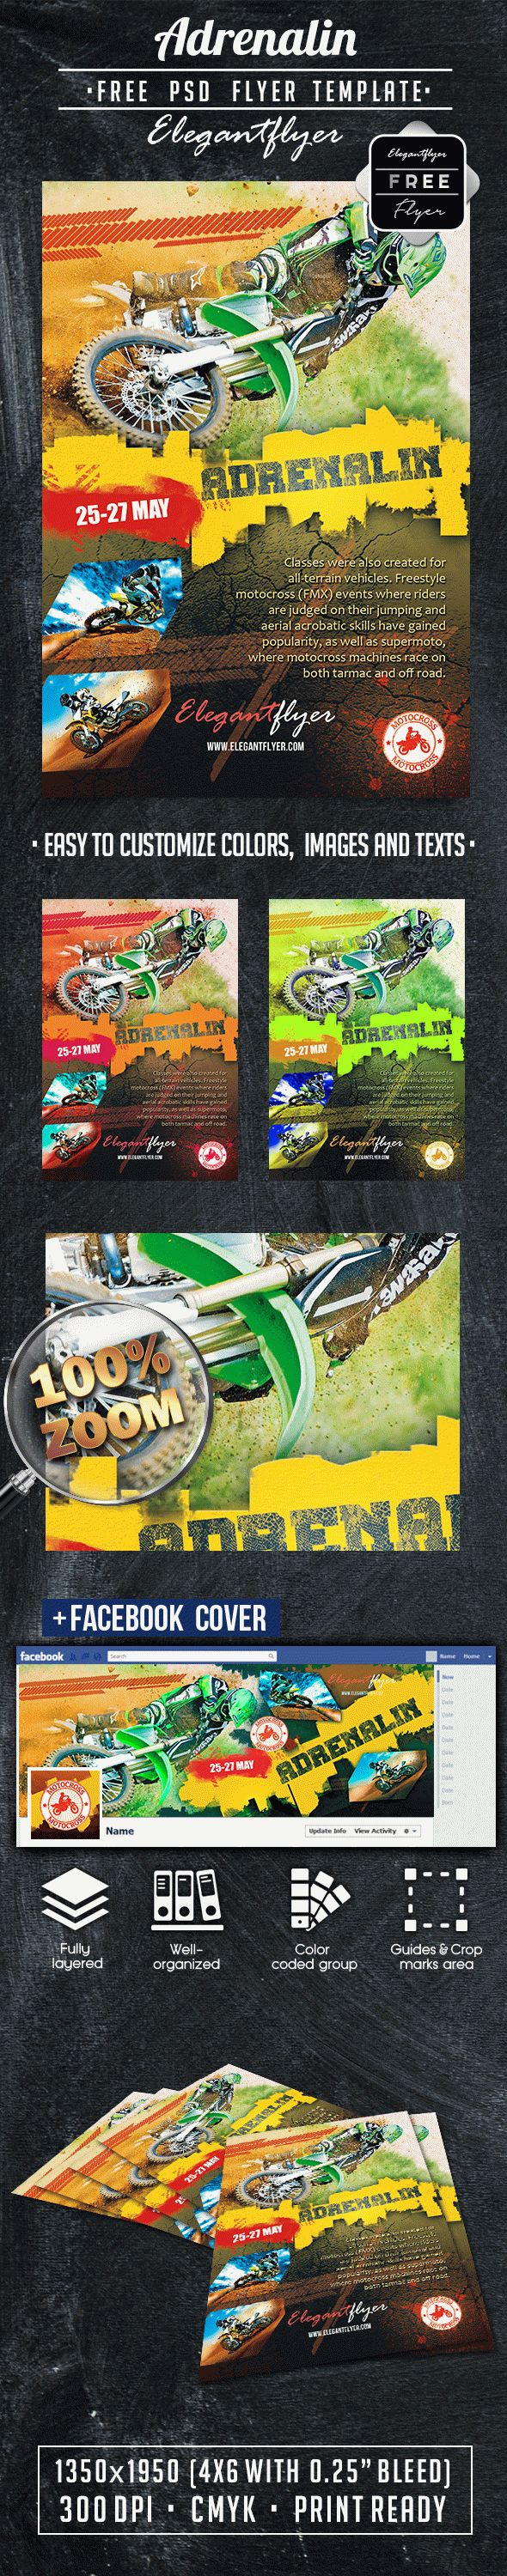 Adrenalin – Free Flyer PSD Template